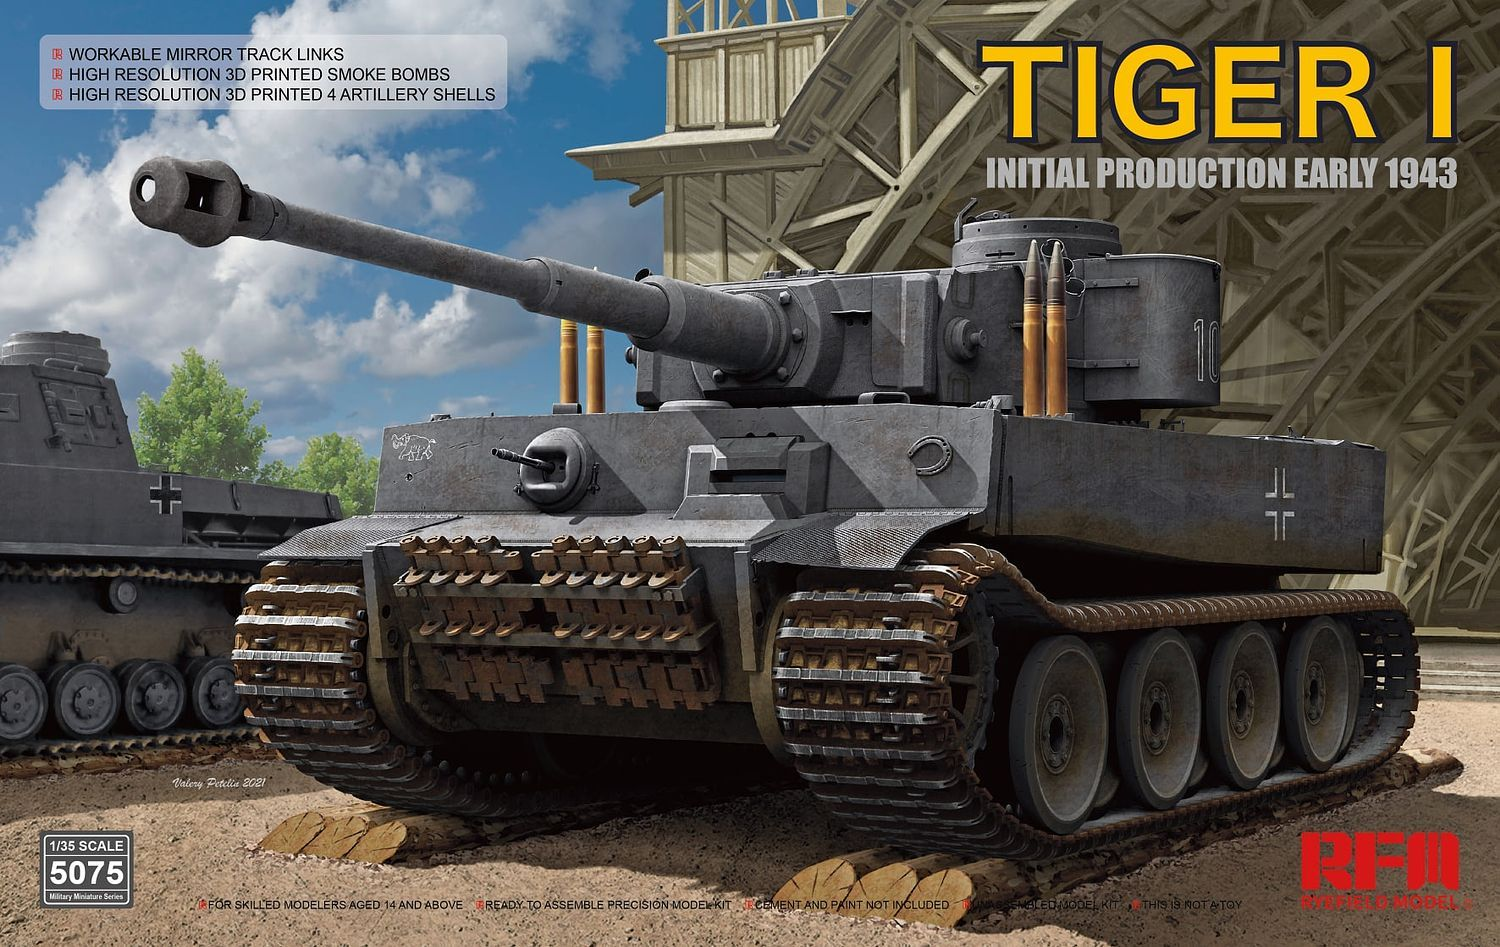 Rye Field Model - 5075 - Tiger I Initial Production Early 1943 1:35